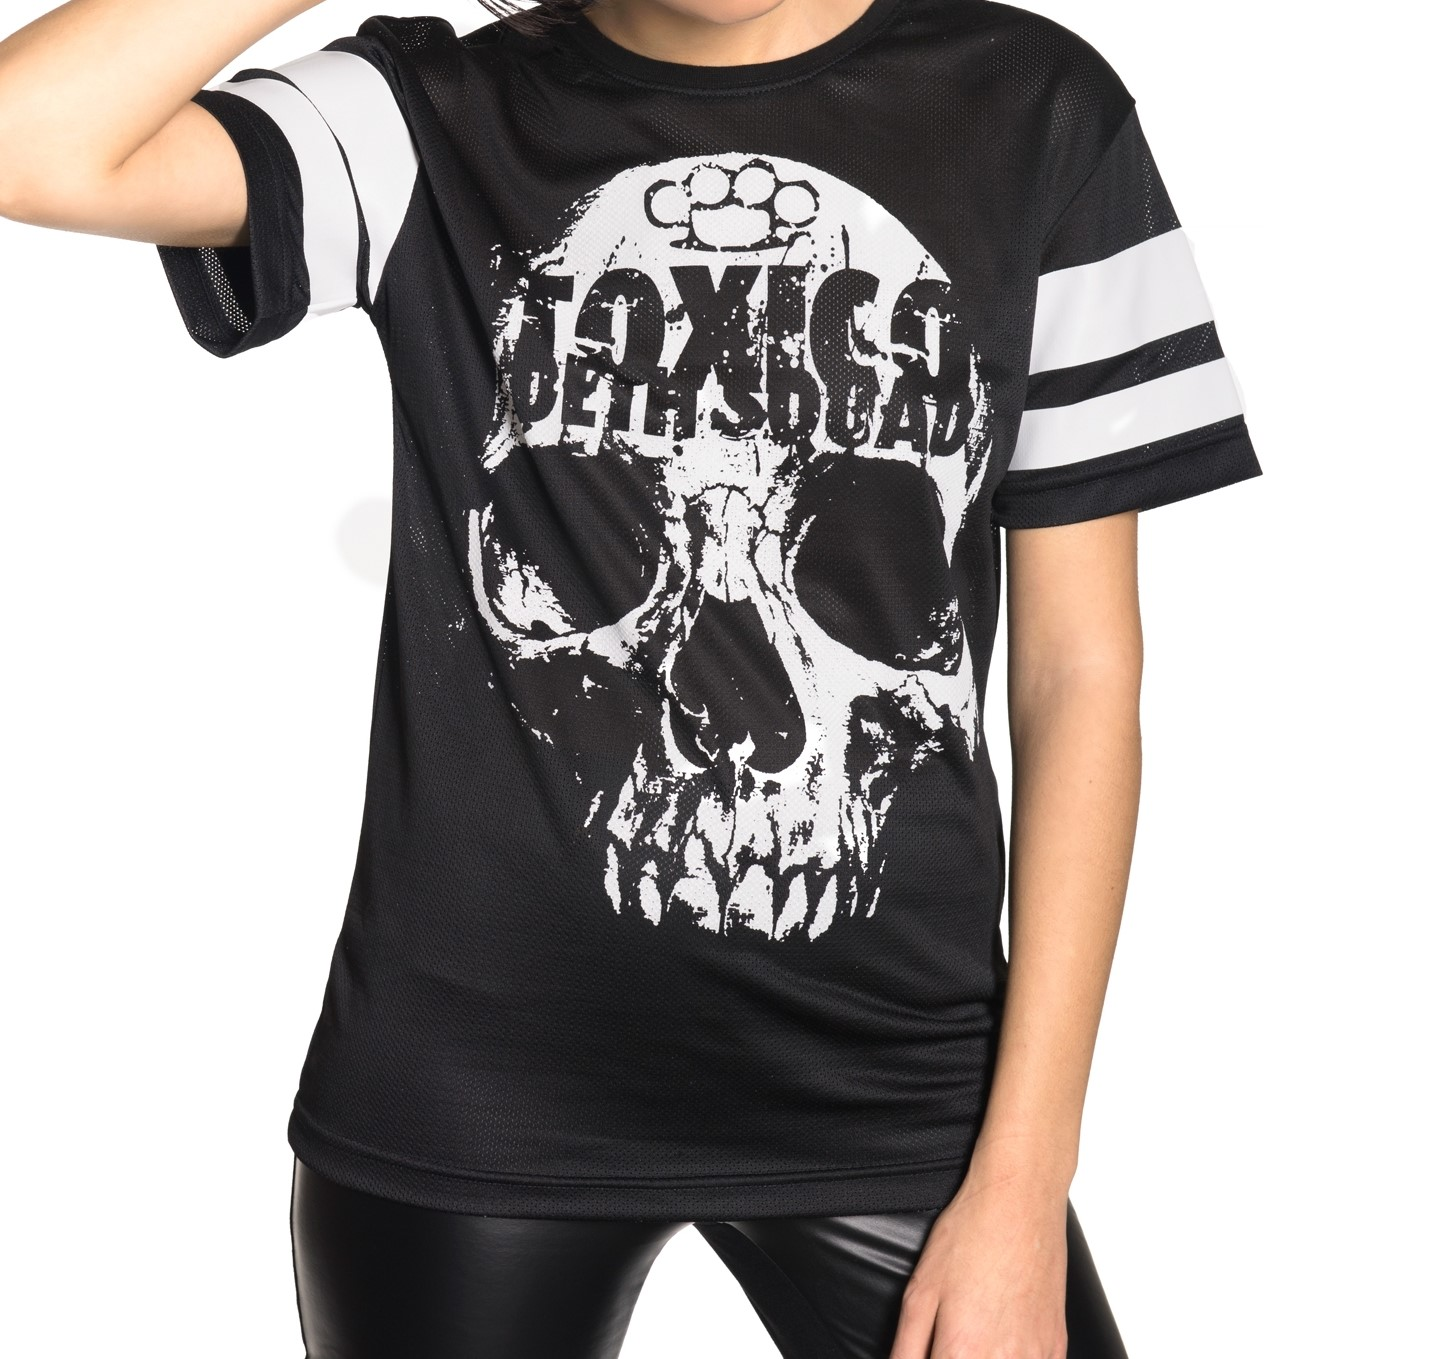 camiseta ropa calaveras rock tattoo style alternativa gotica 13depicas online custom